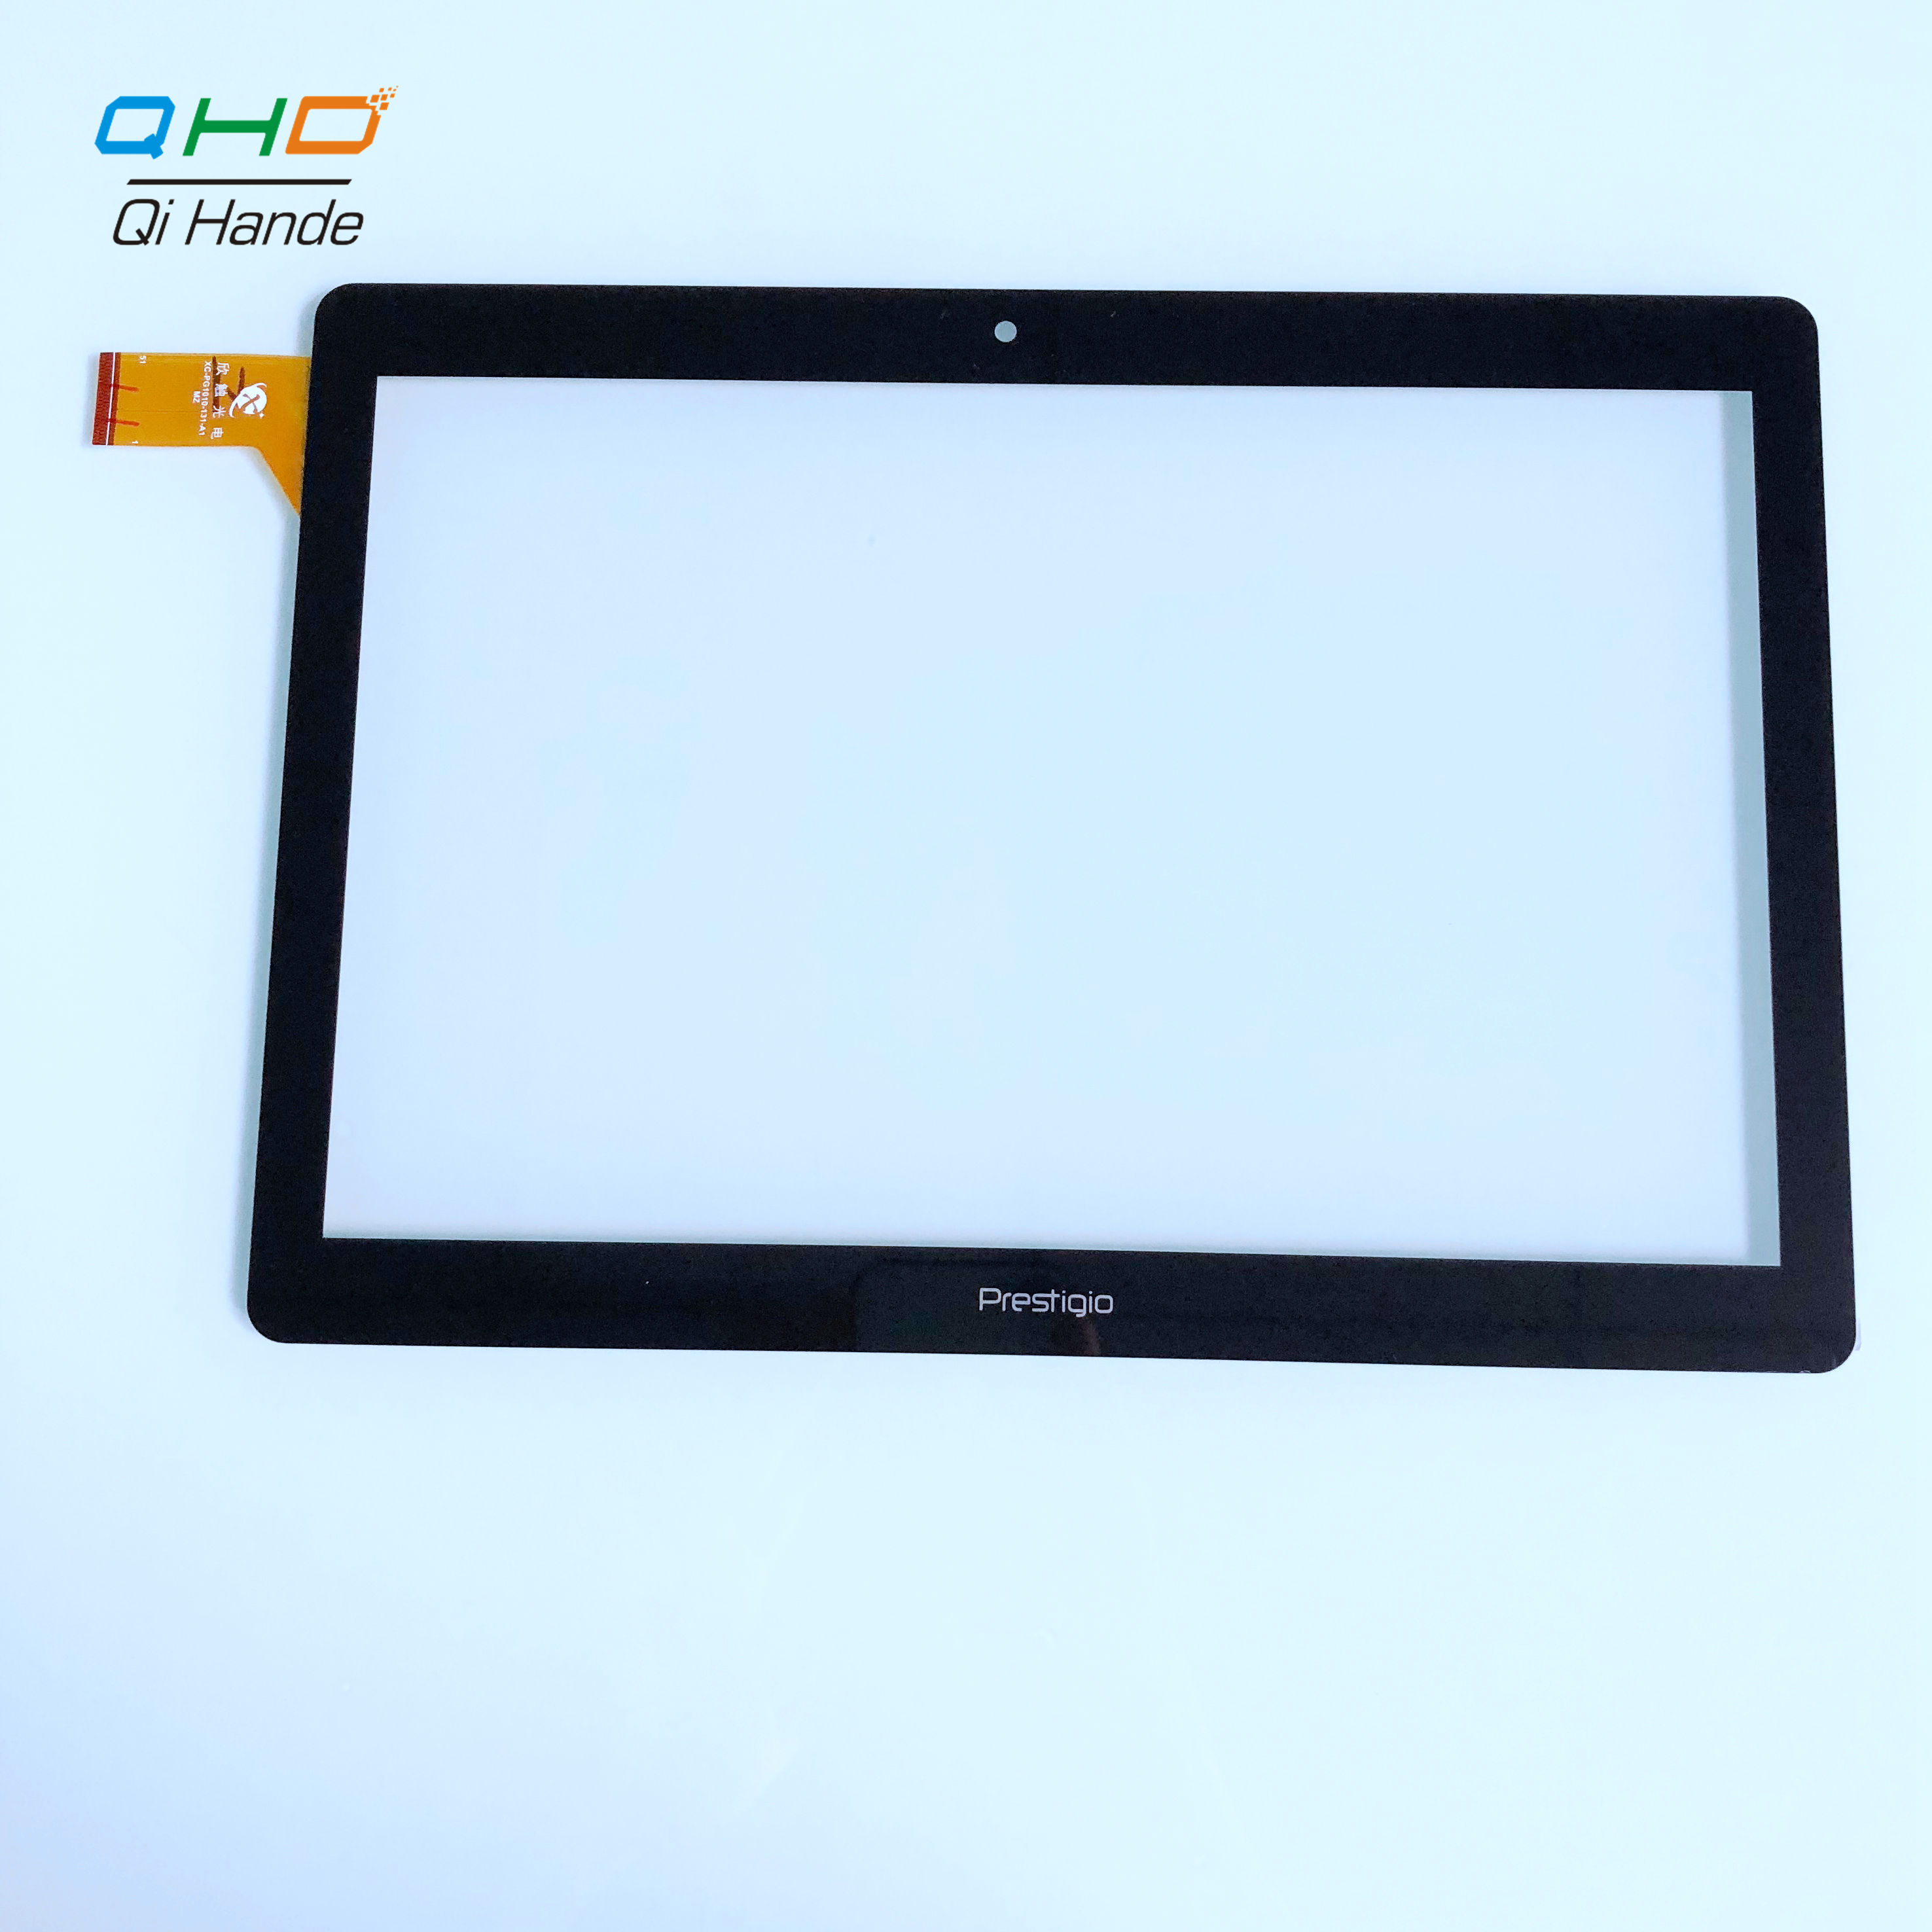 XC PG1010 131 A1 Tablet Touch Screen Digitizer Sensor XC PG1010 131 XC PG1010 for Prestigio WIZE 3151 Muze PMT3151C PMT3151D 3G|Tablet LCDs & Panels|   - title=